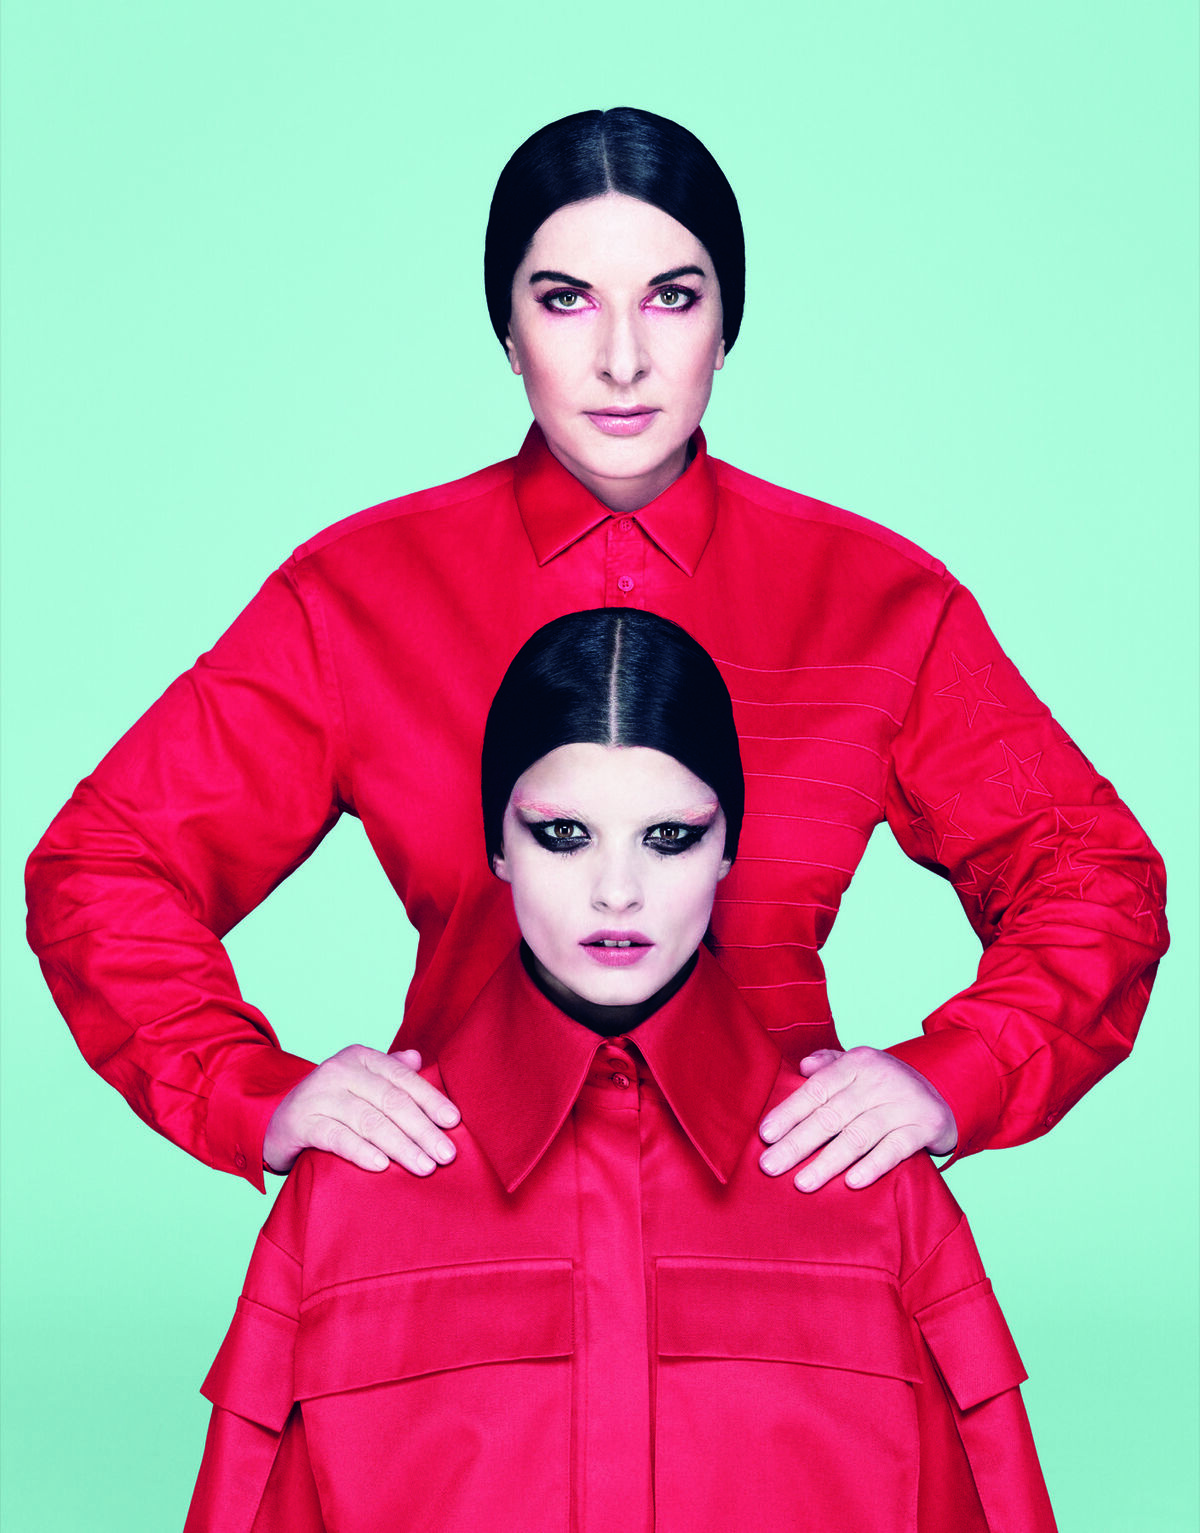 2d941c5542fa Dusan Reljin, Marina Abramović and Crystal Renn for Vogue Ukraine, 2014,  from ""